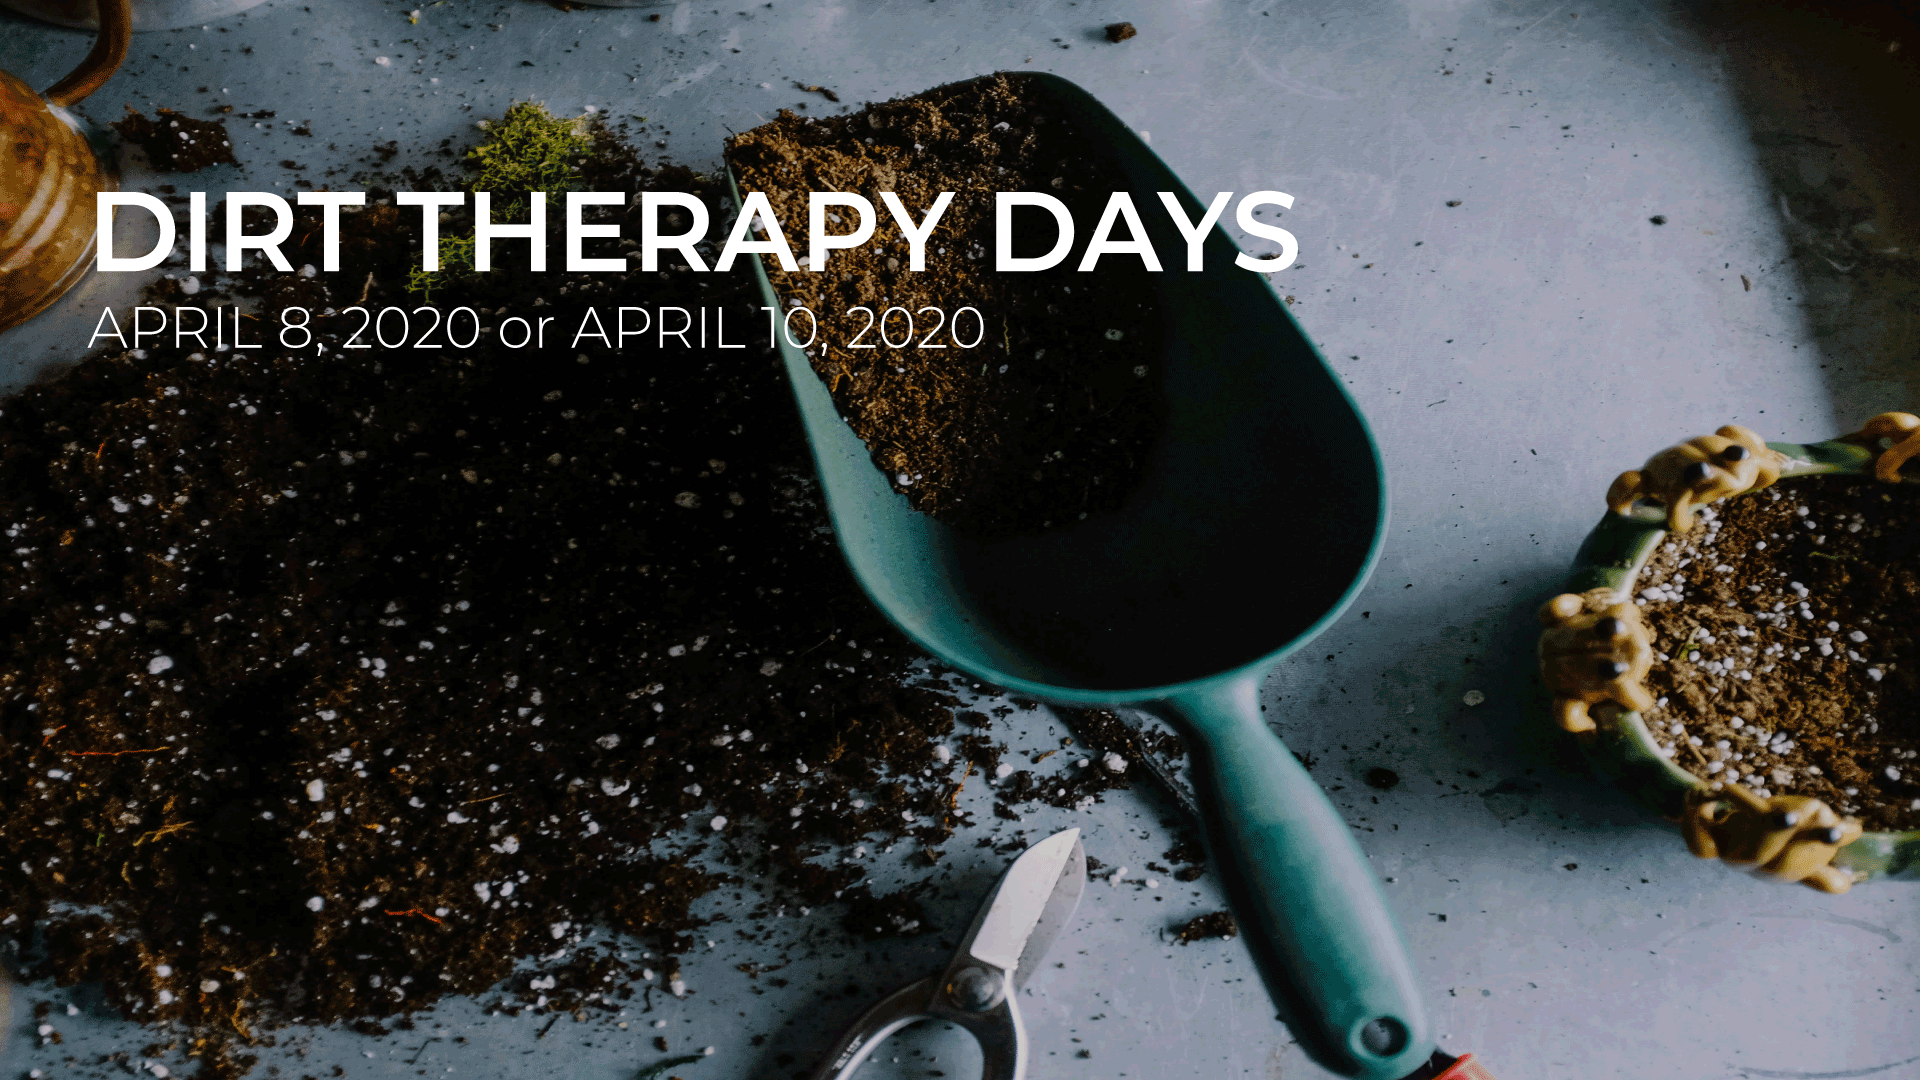 Dirt-Therapy-Days-April-8-10,2020